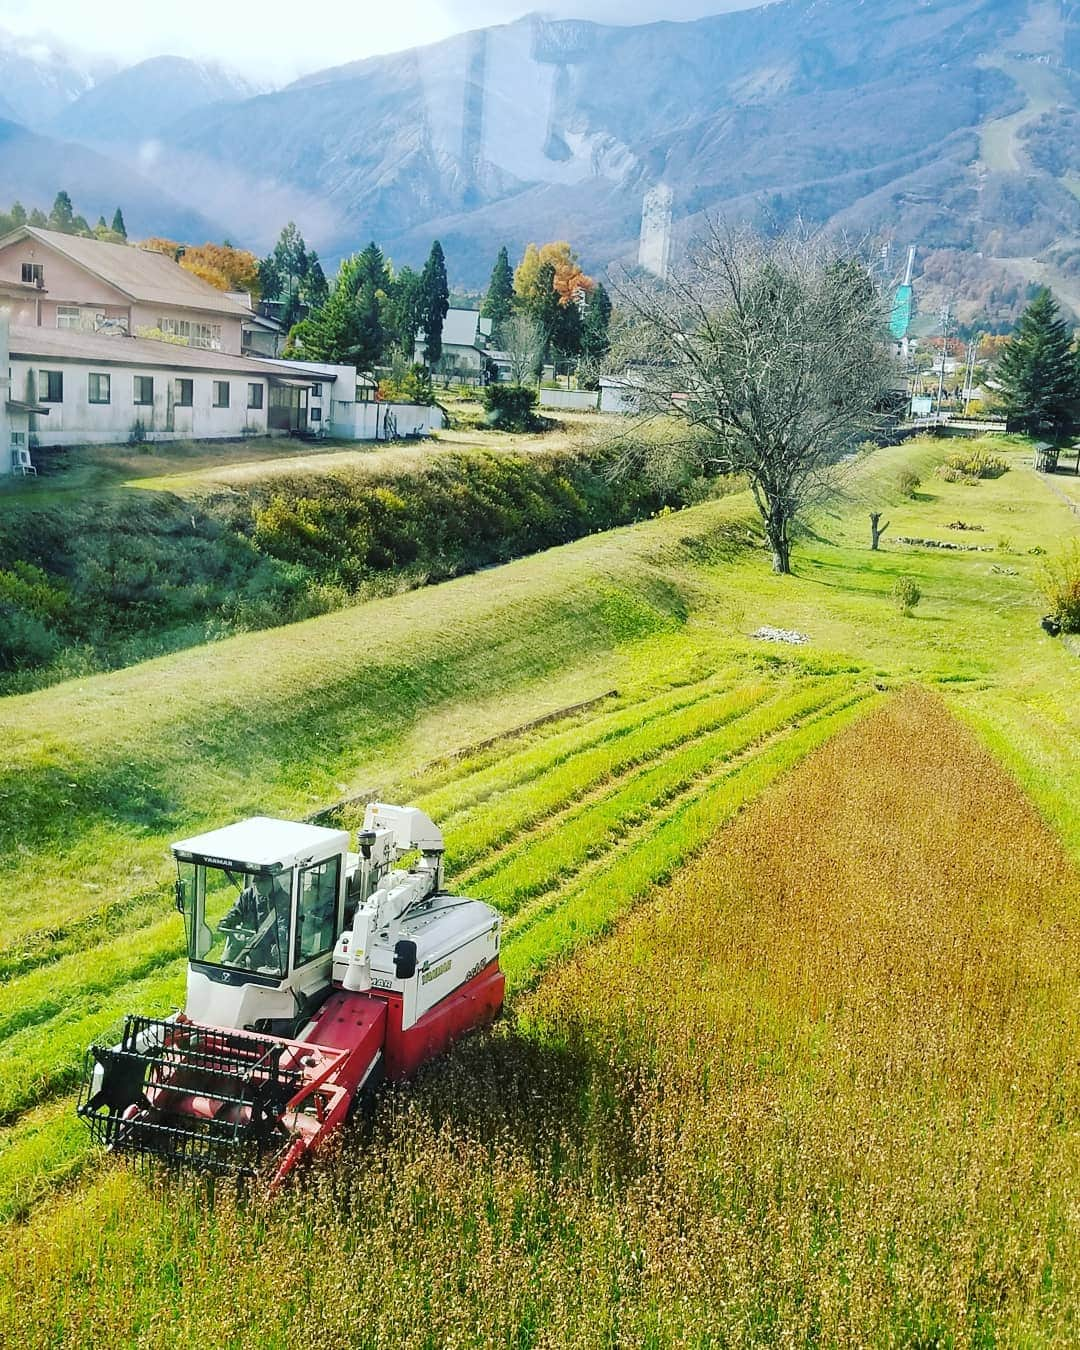 Soba harvesting in the Autumn, a stunning time to come visit.